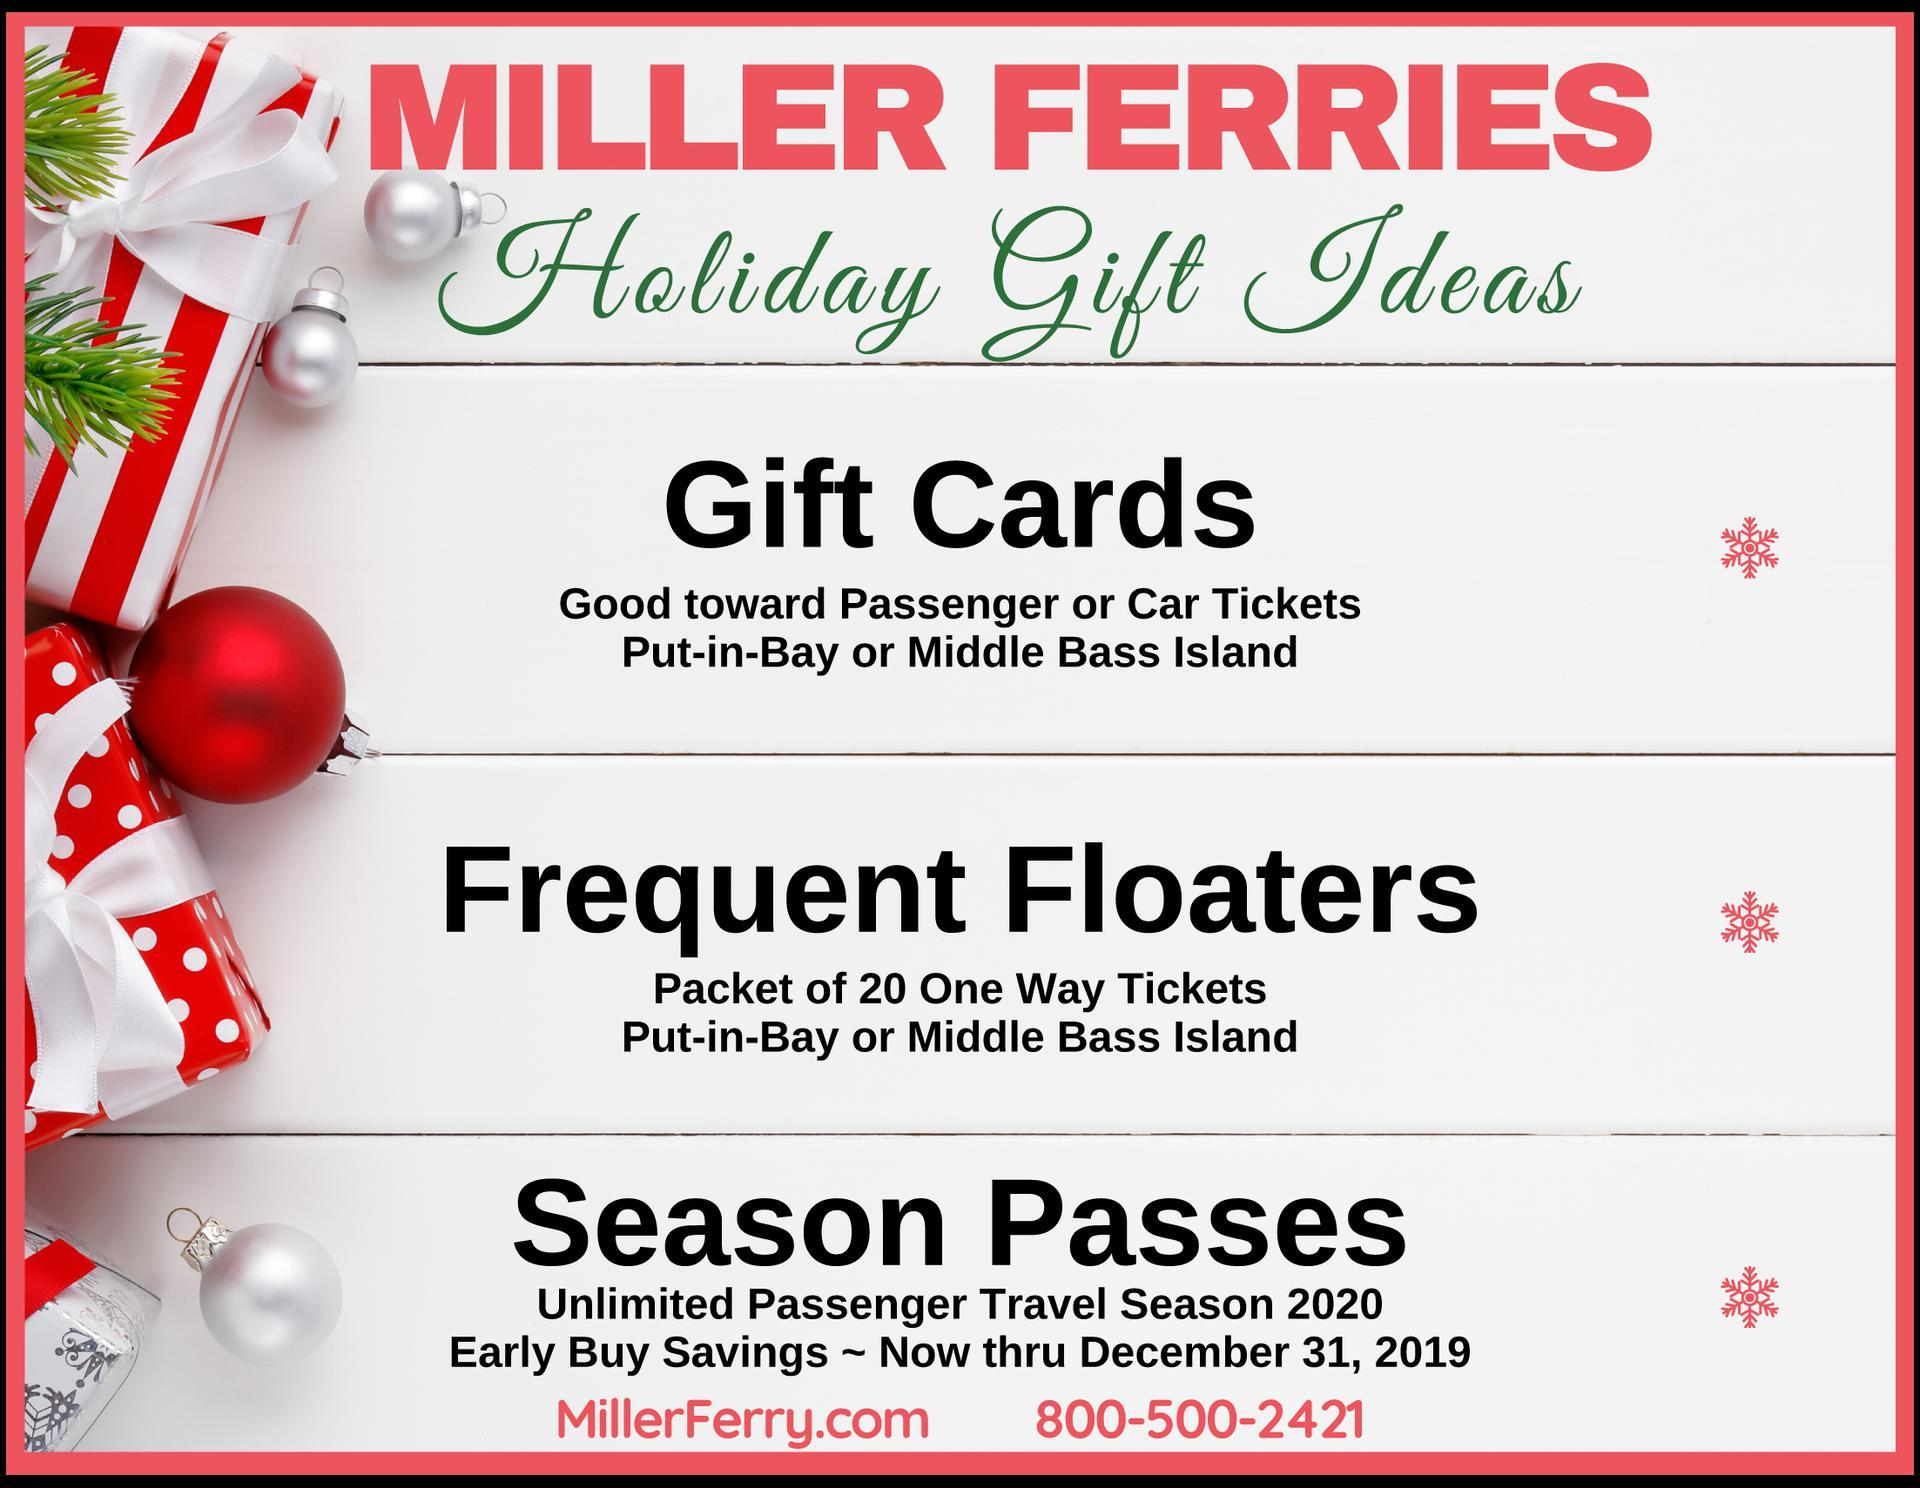 Miller Ferry Holiday Gift Ideas